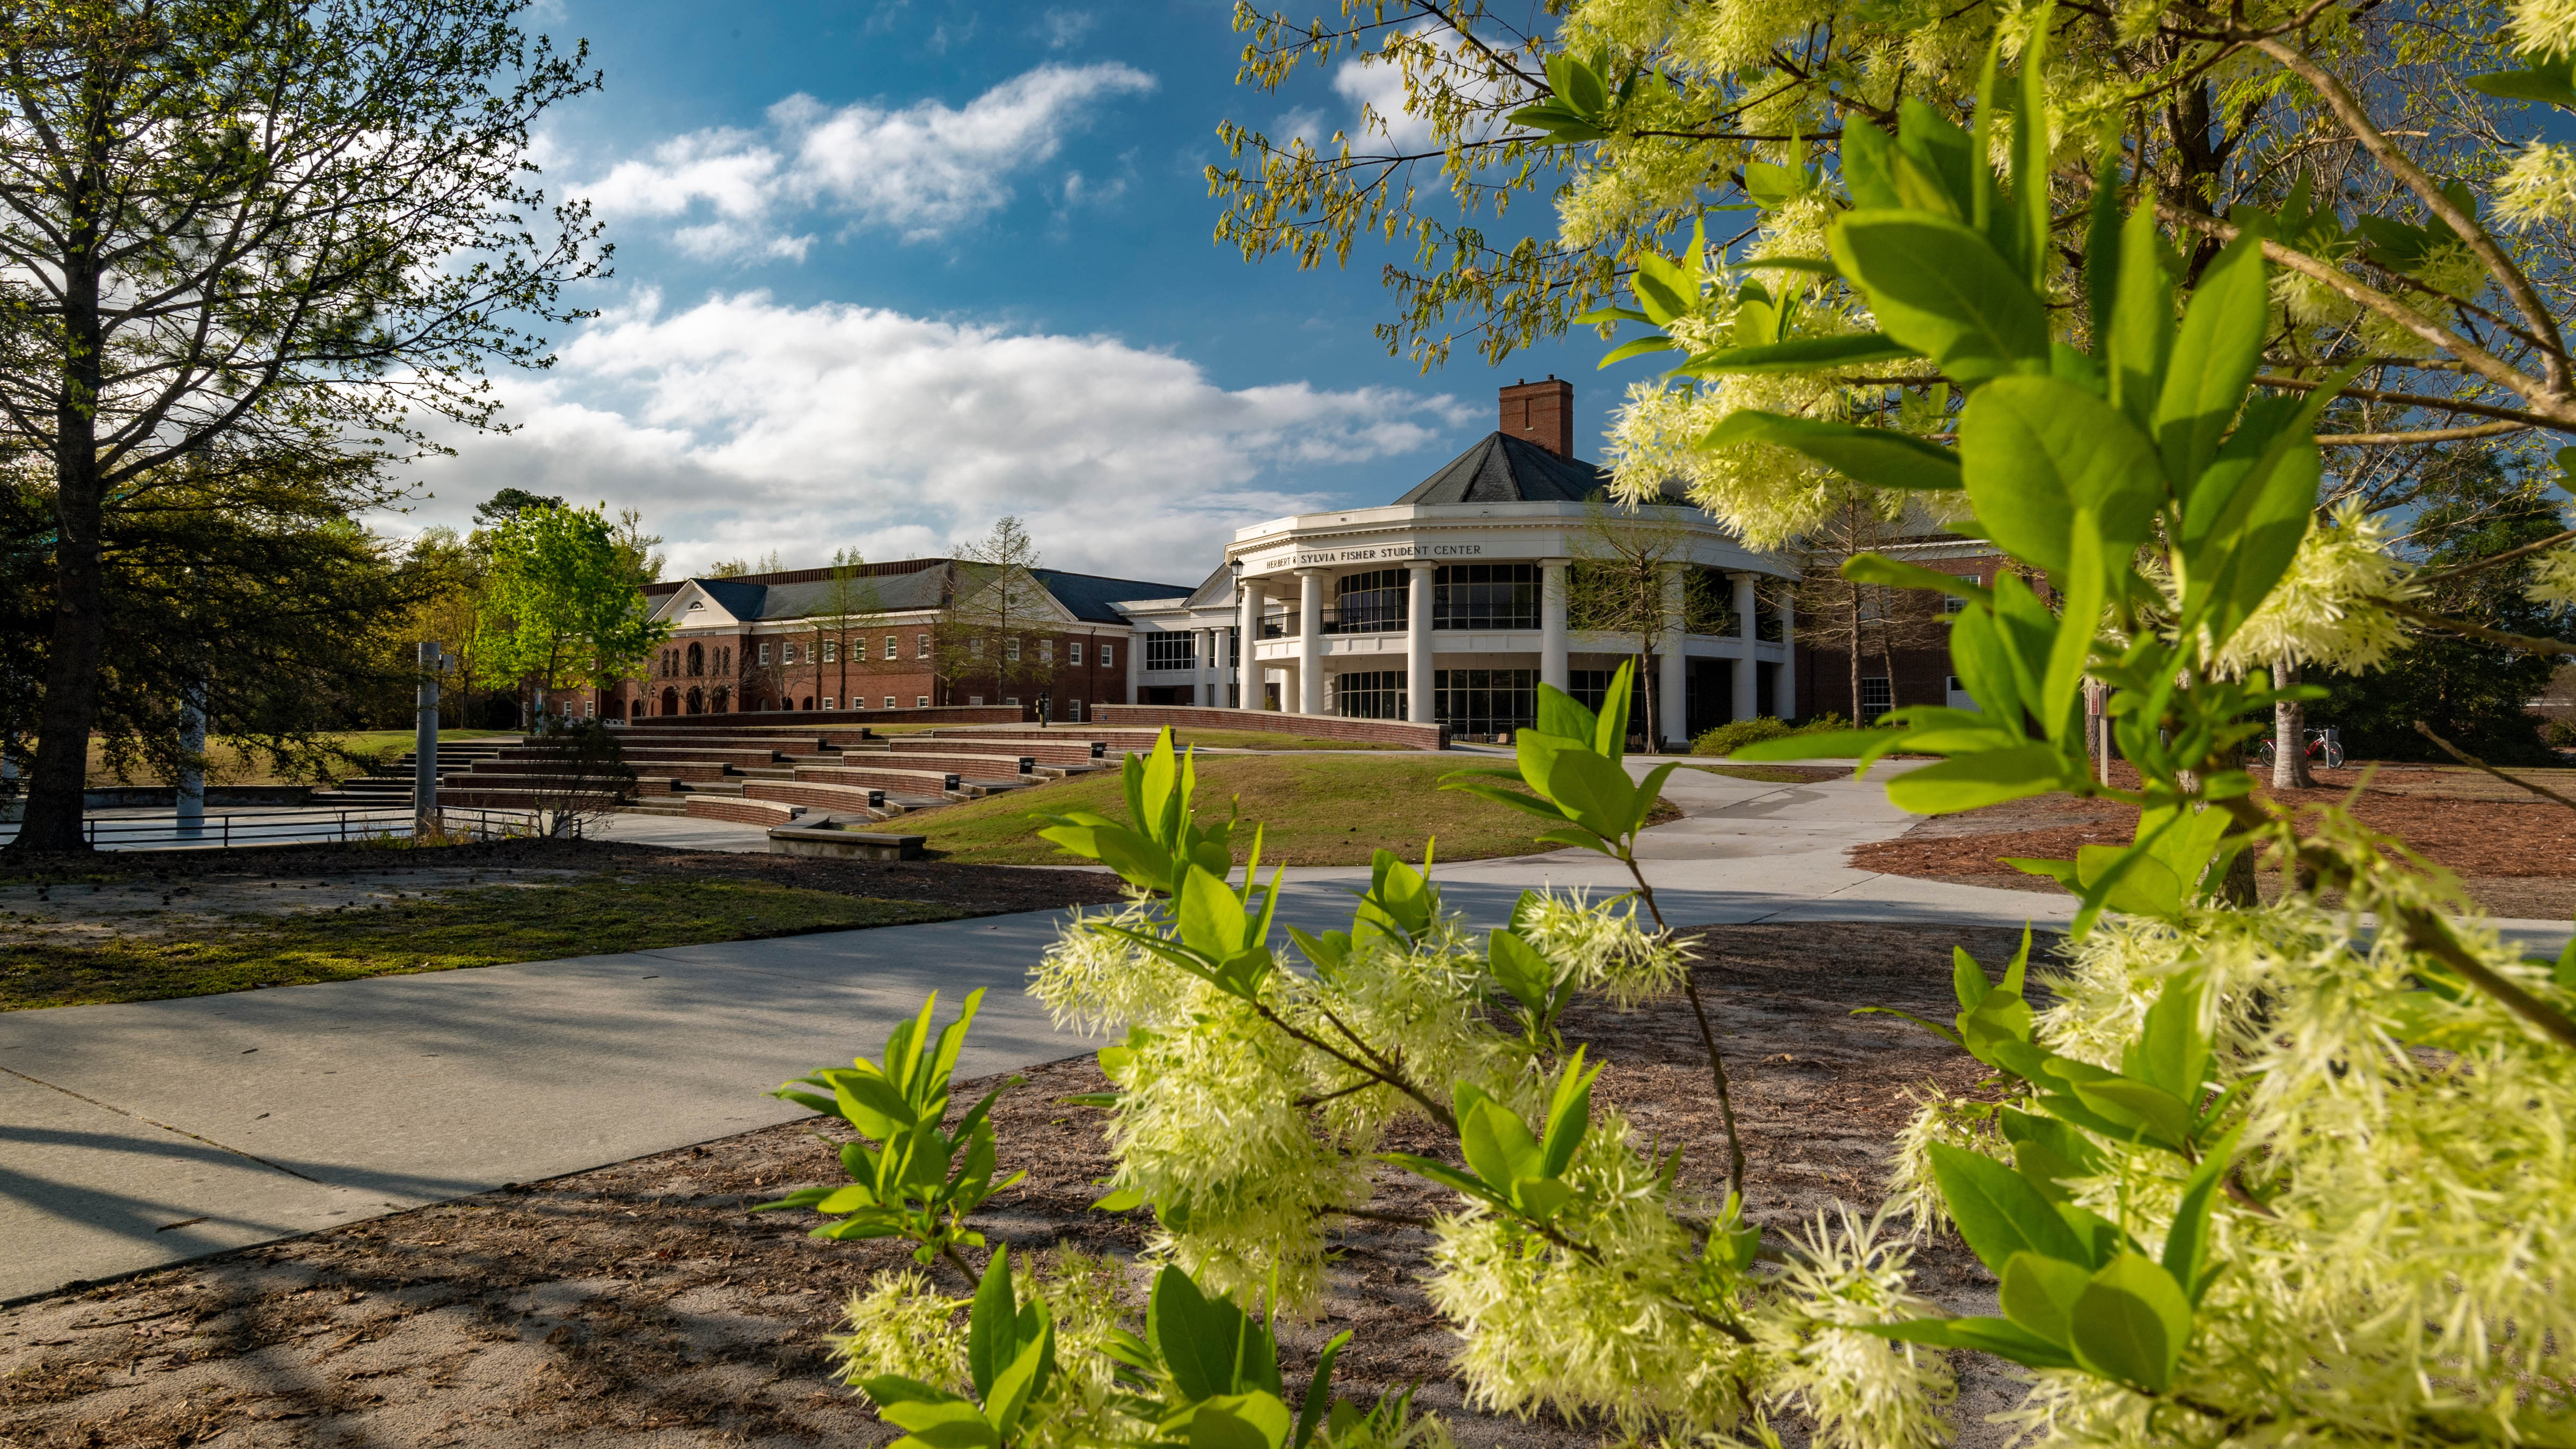 Fisher Student Center, Fisher University and the Amphiteater, with green plants in the foreground.